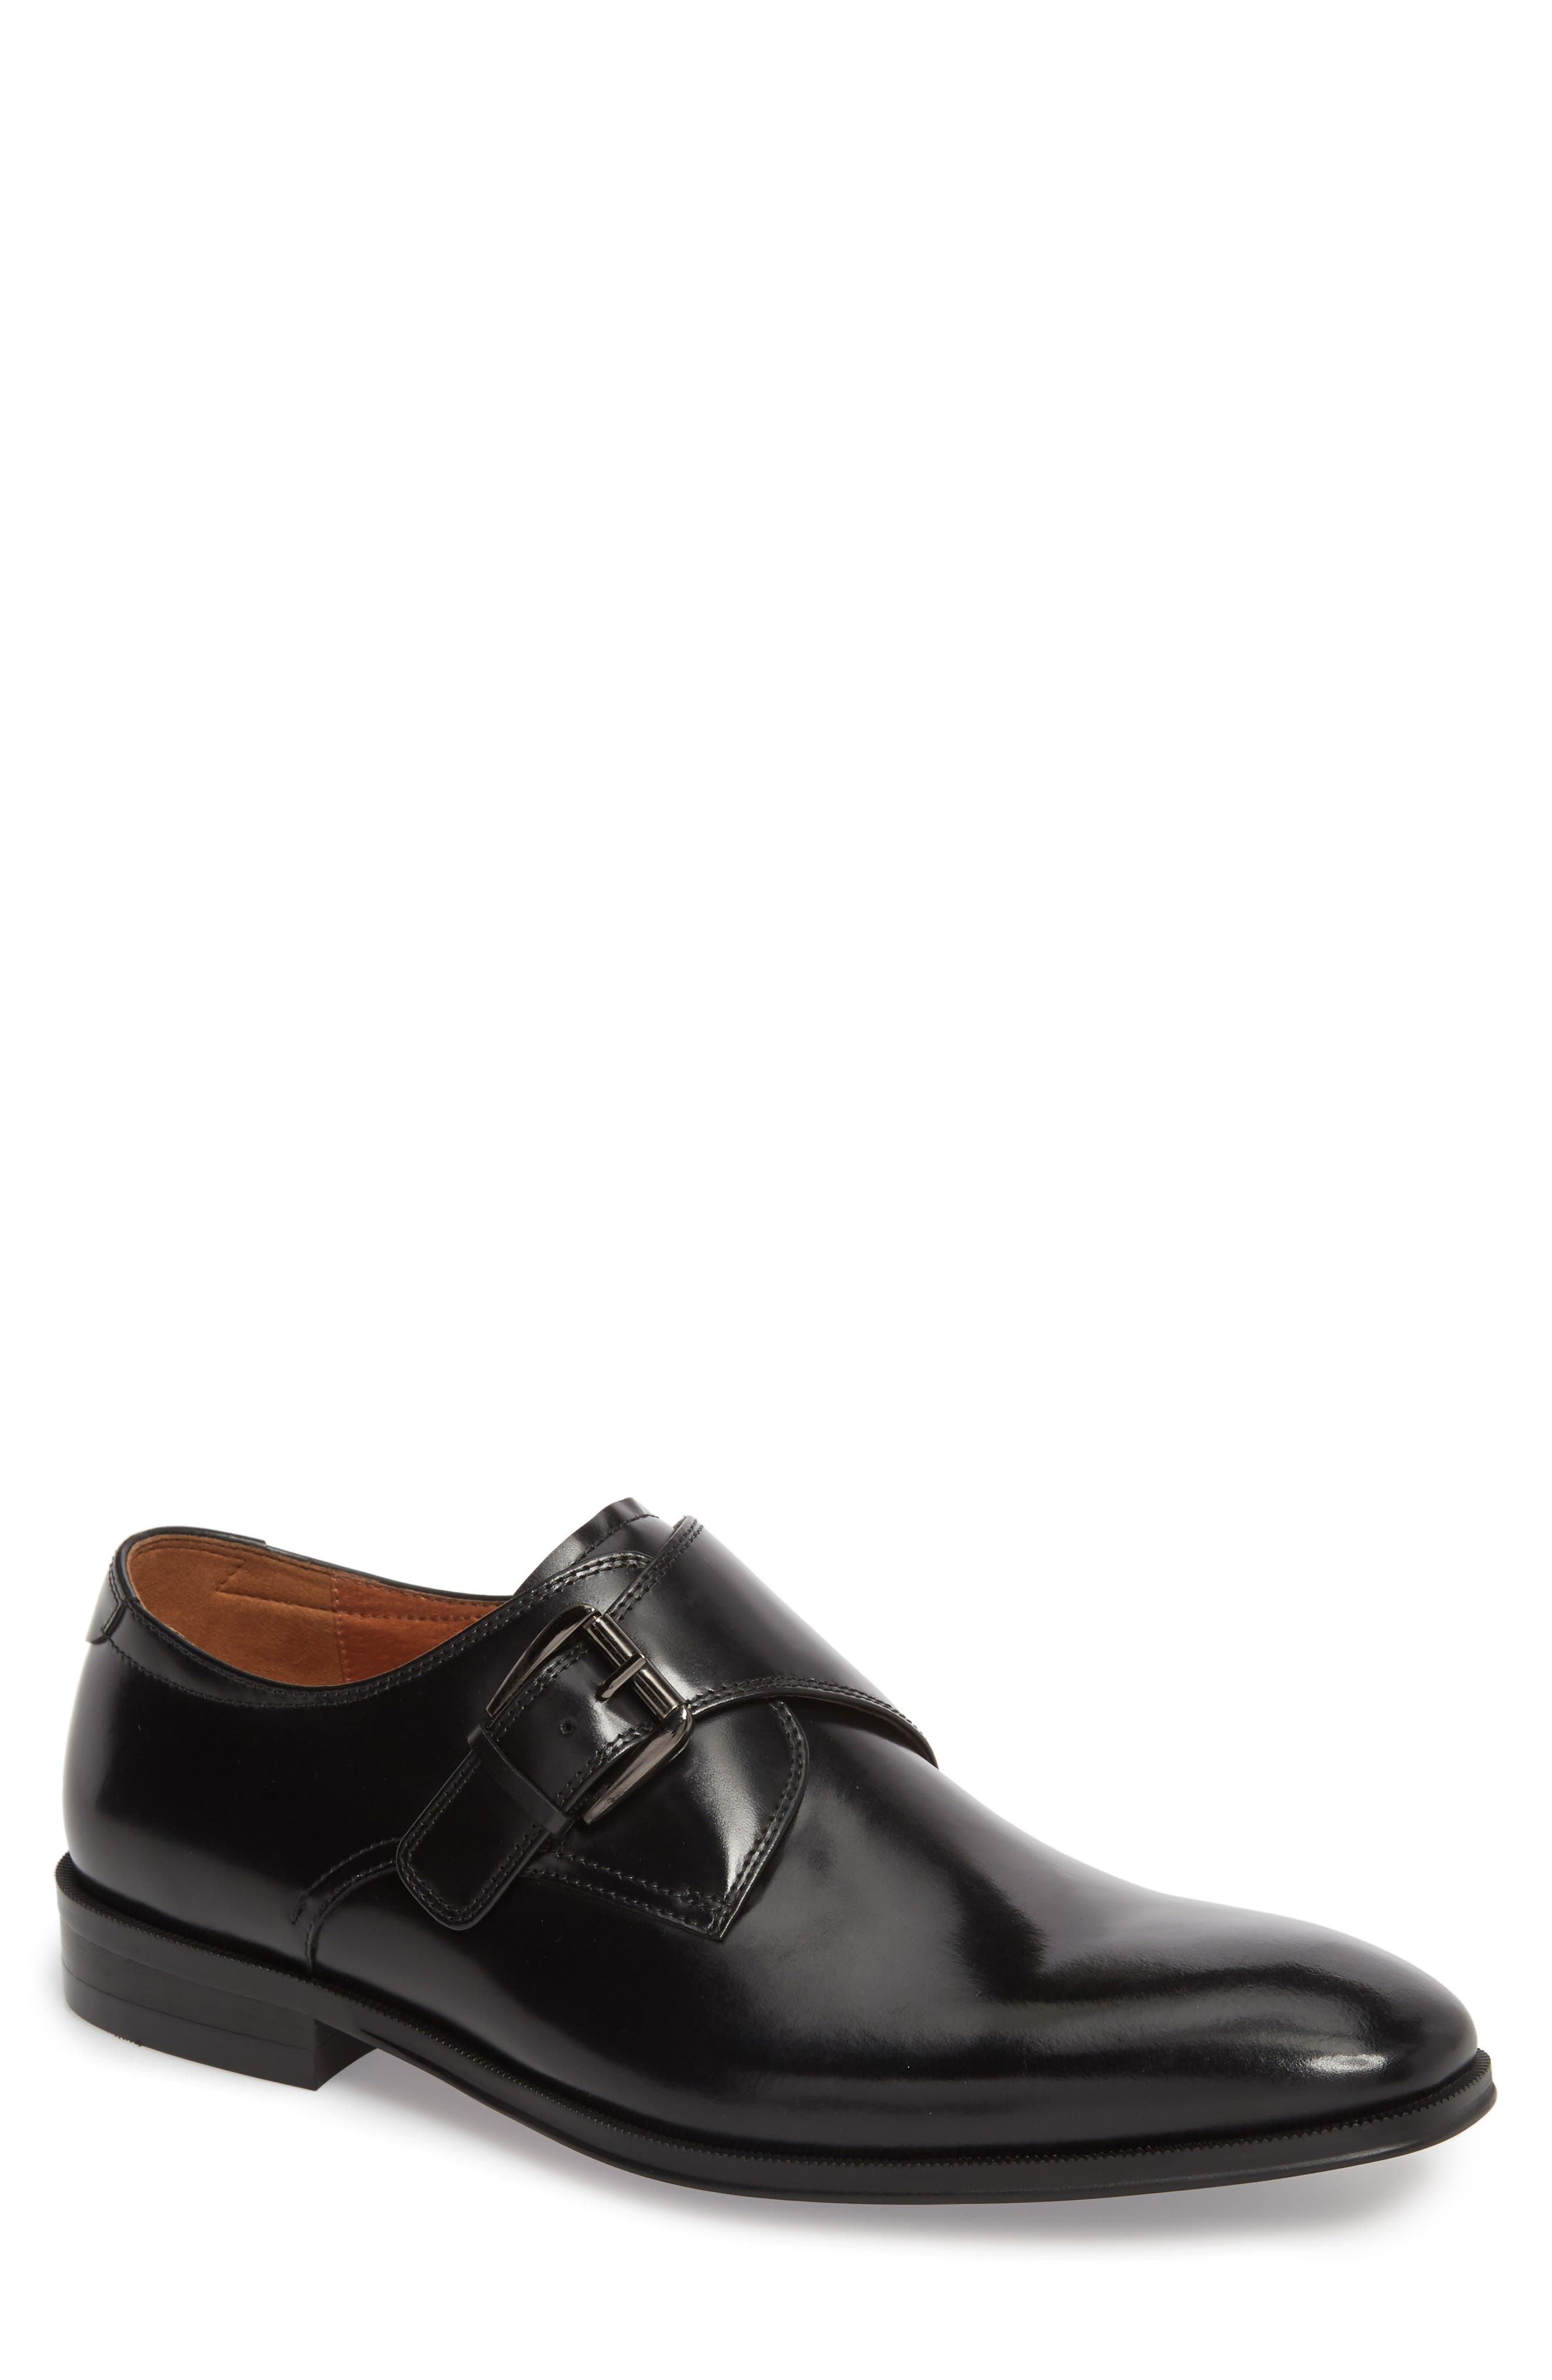 Belfast Single Strap Monk Shoe,                             Main thumbnail 1, color,                             BLACK LEATHER